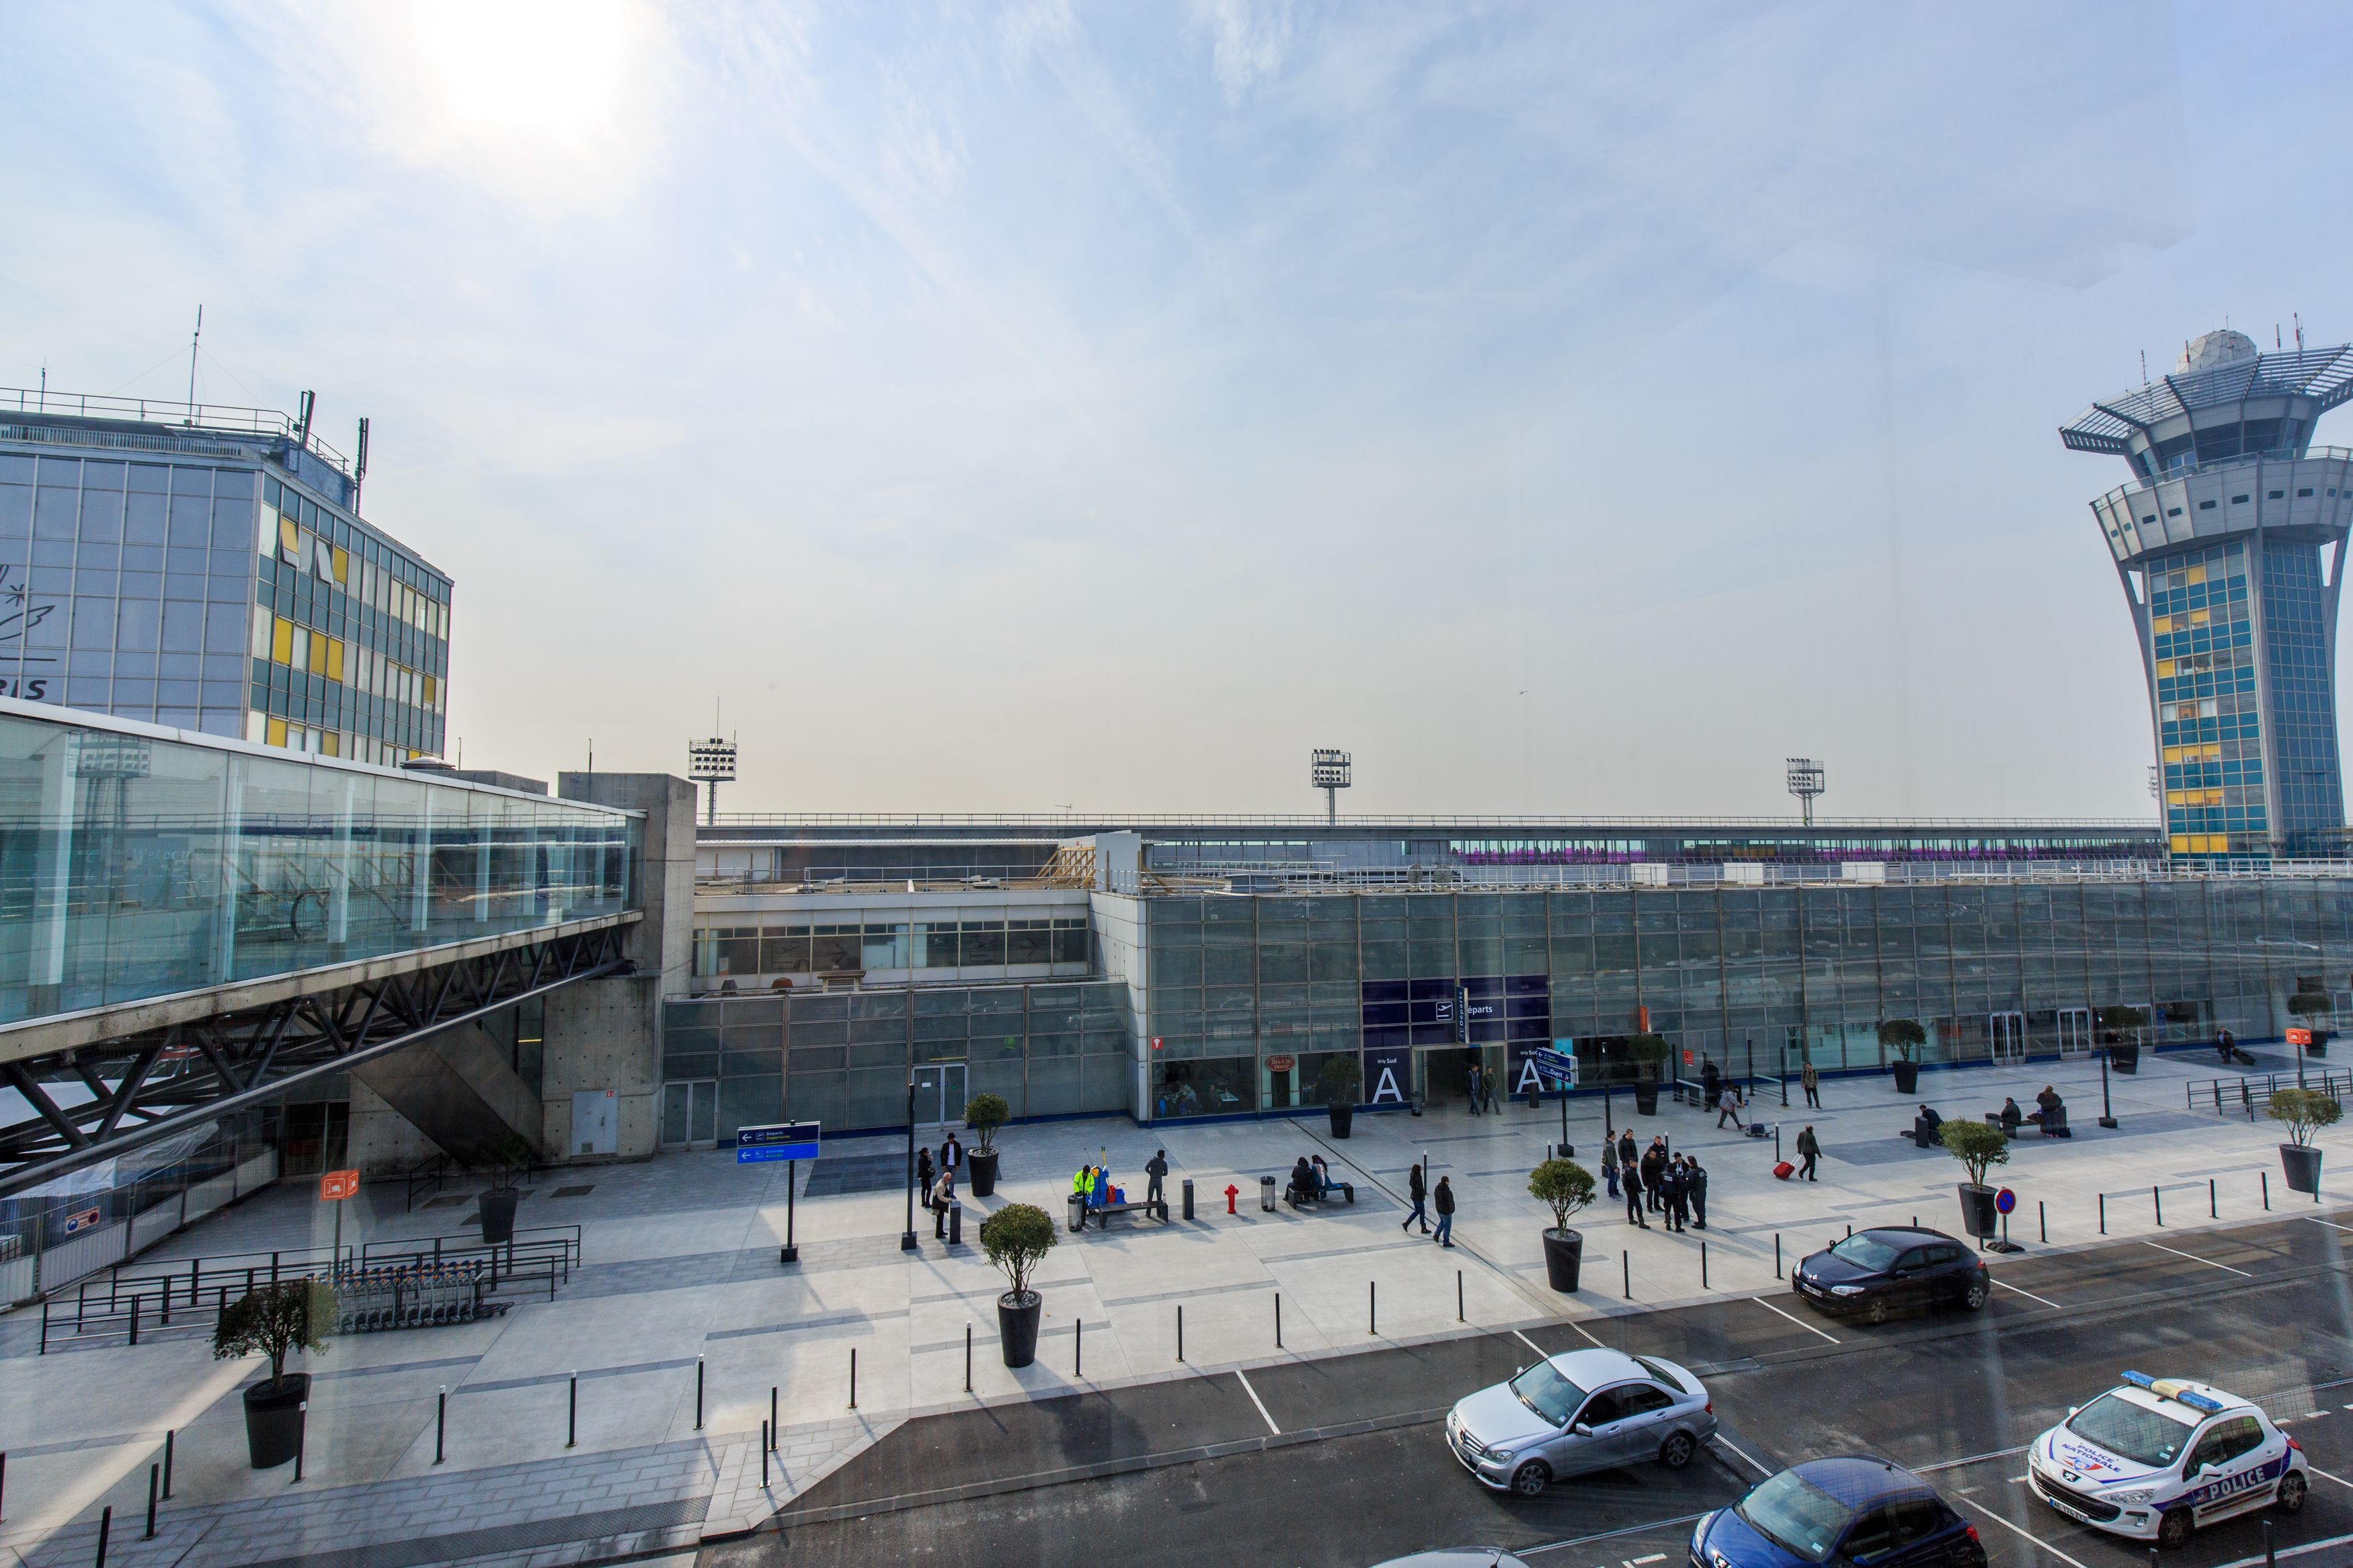 Aeroporto Orly : Paris airport transportation guide